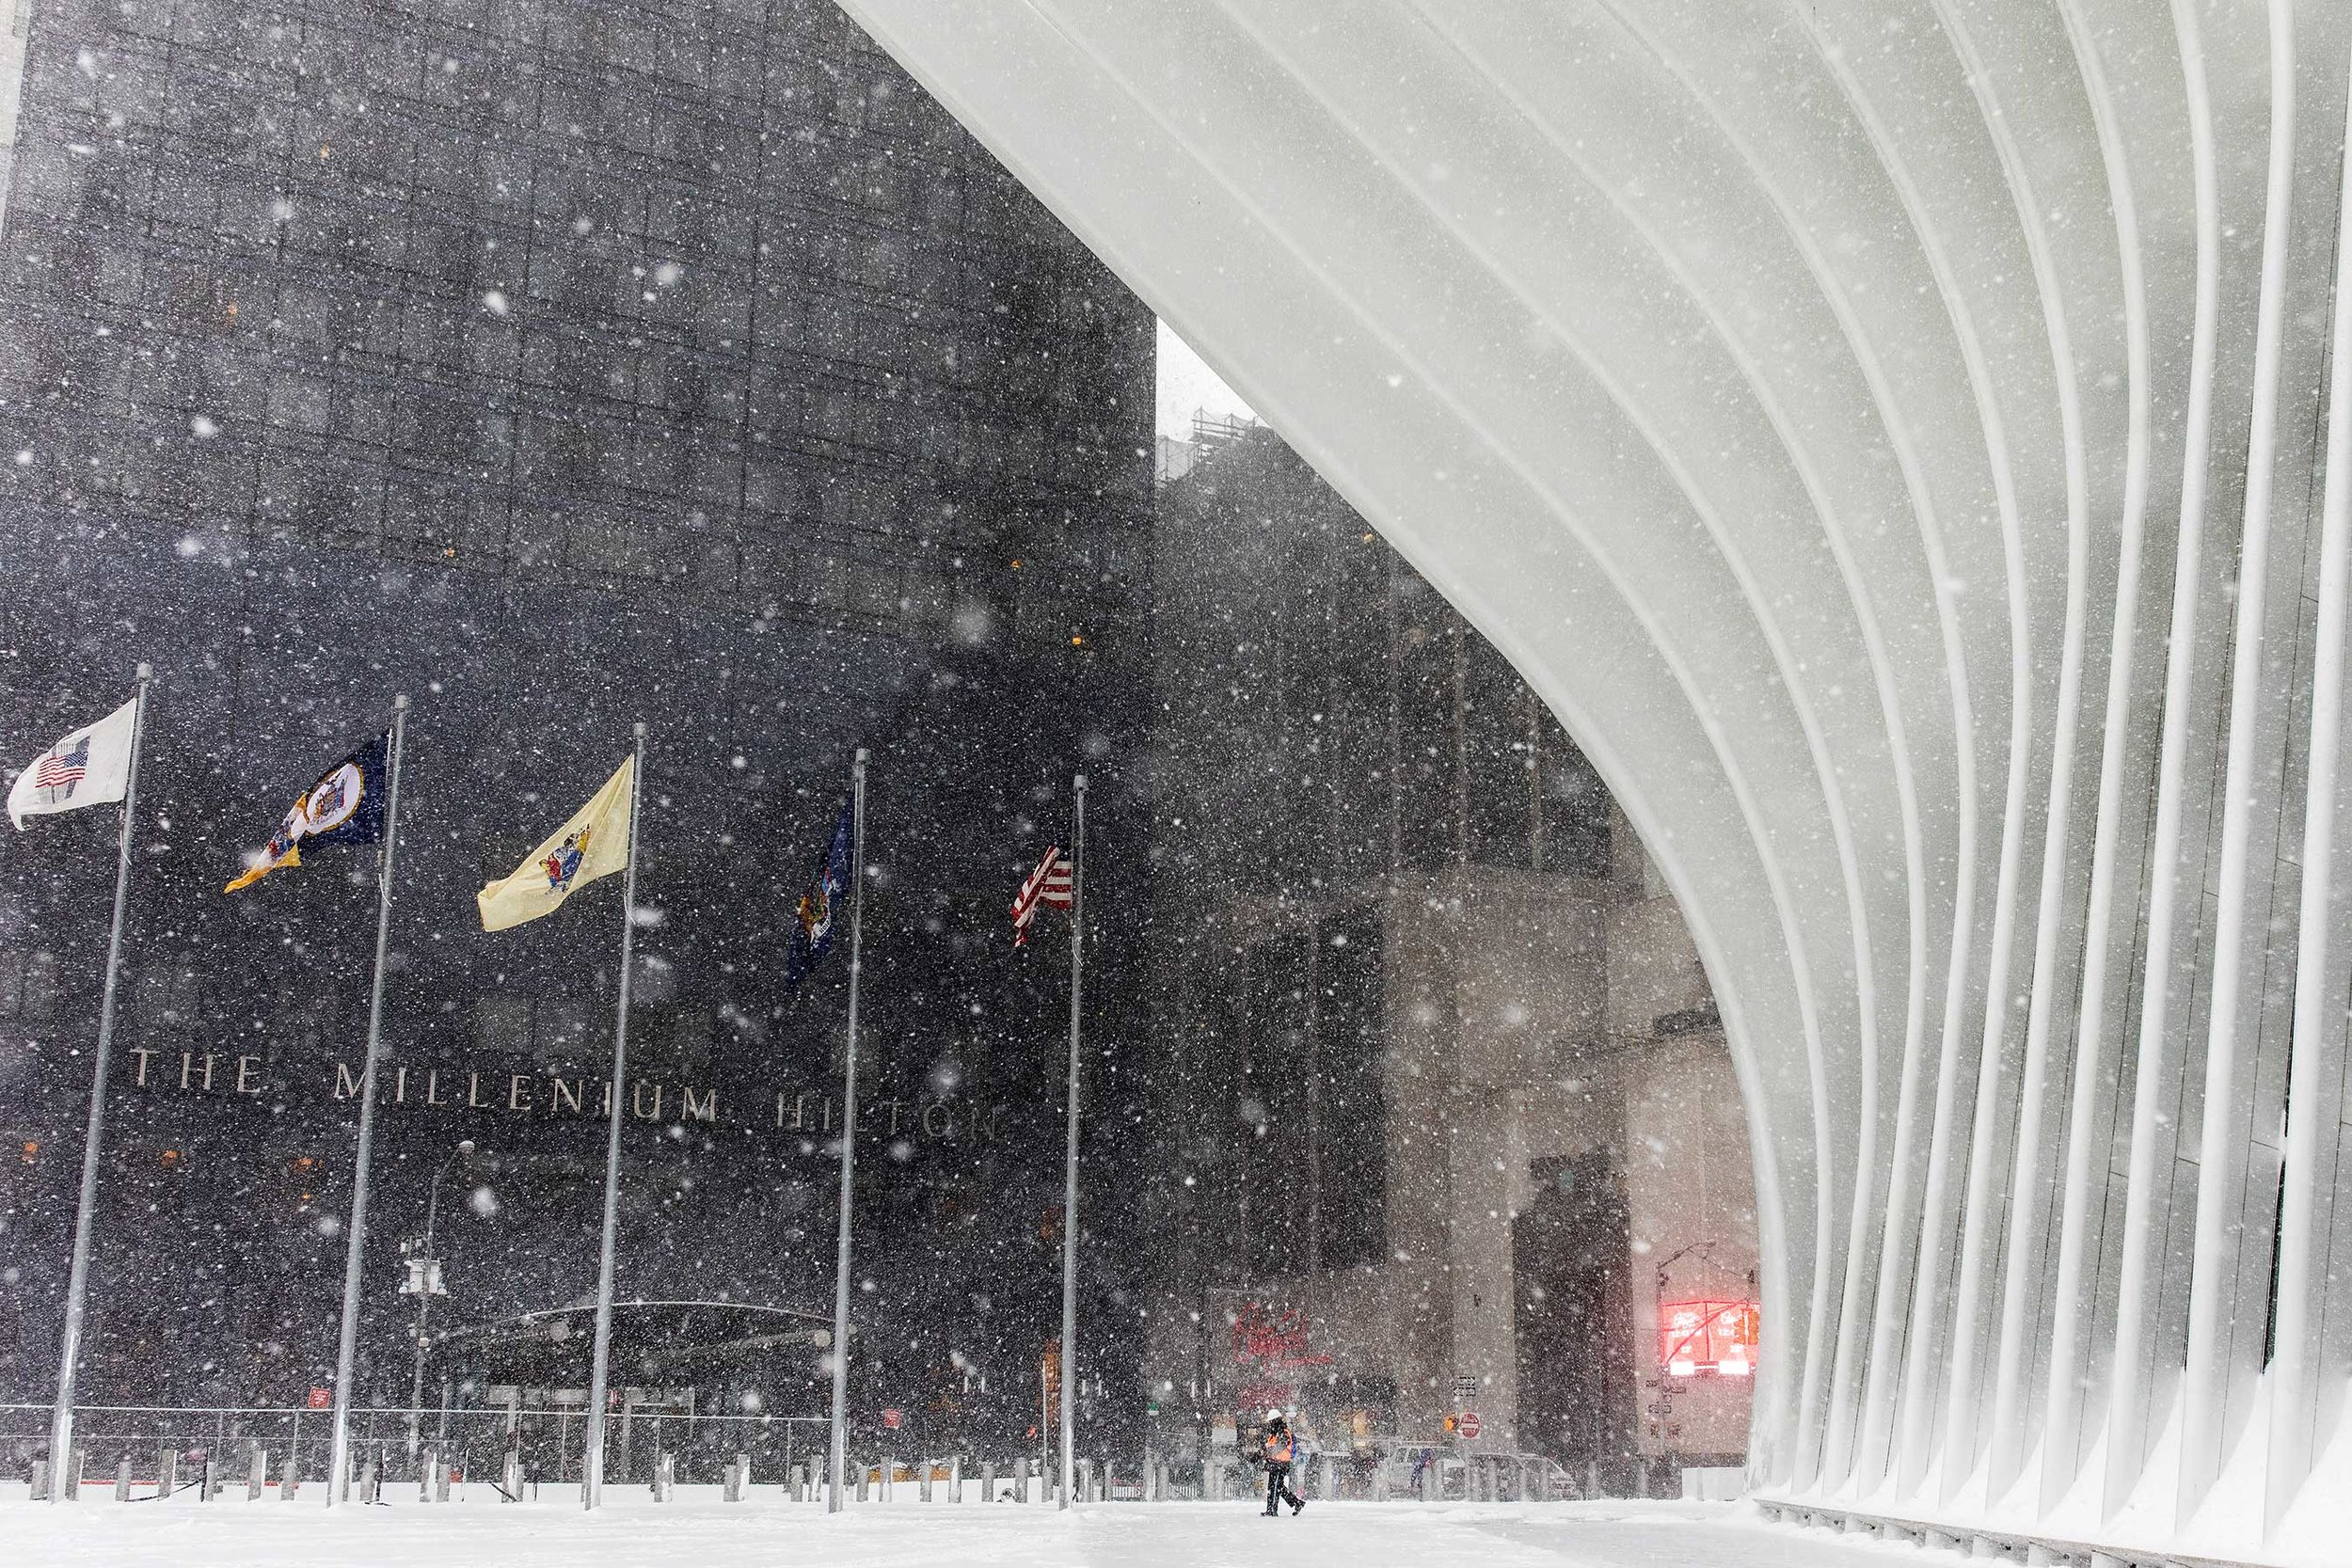 Oculus. NYC Snow Storm. Manhattan, NY. 2018